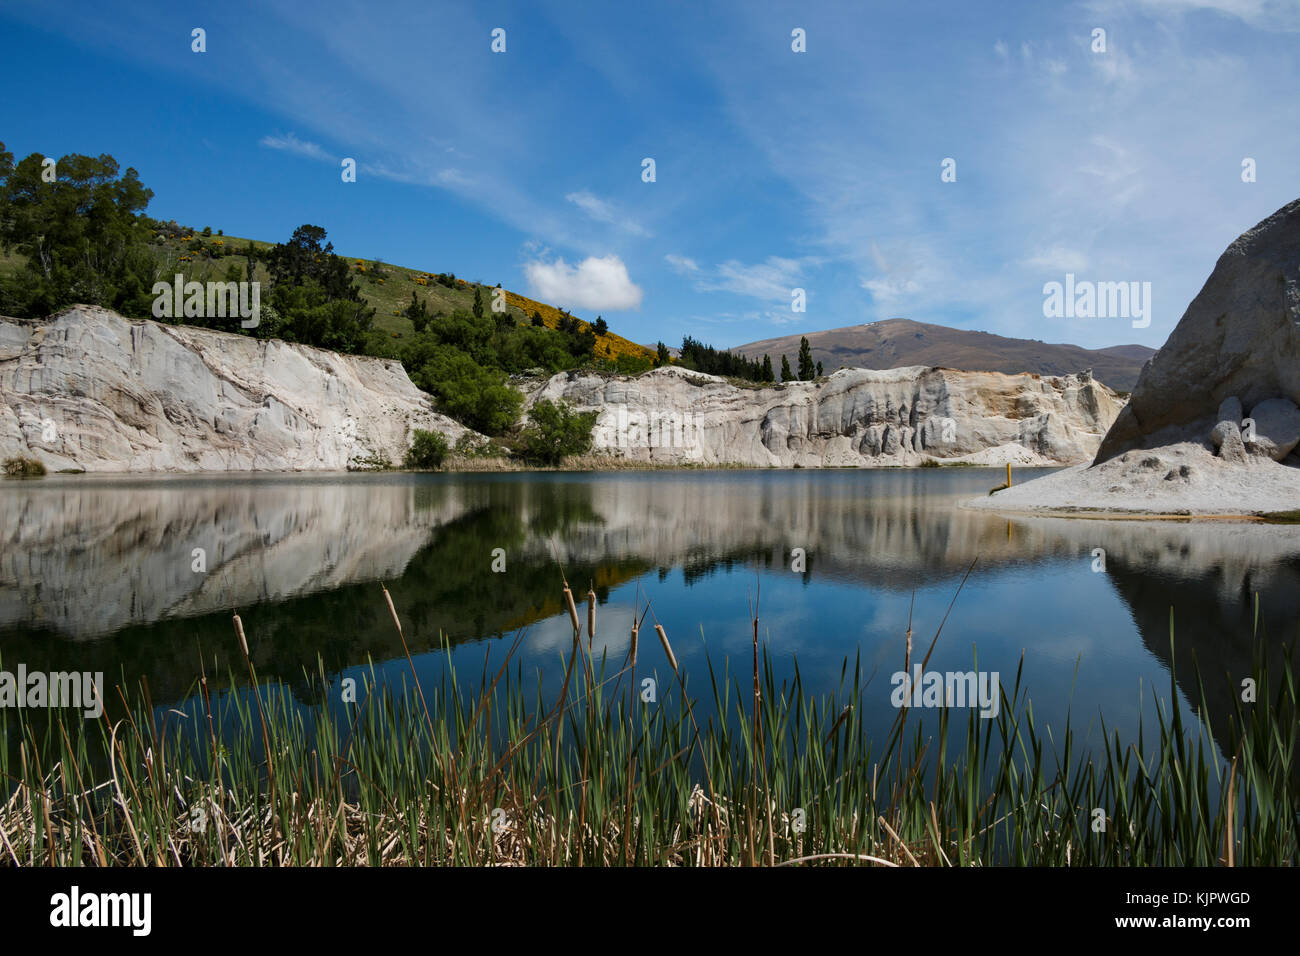 St. Bathans reflection on a clear day. - Stock Image